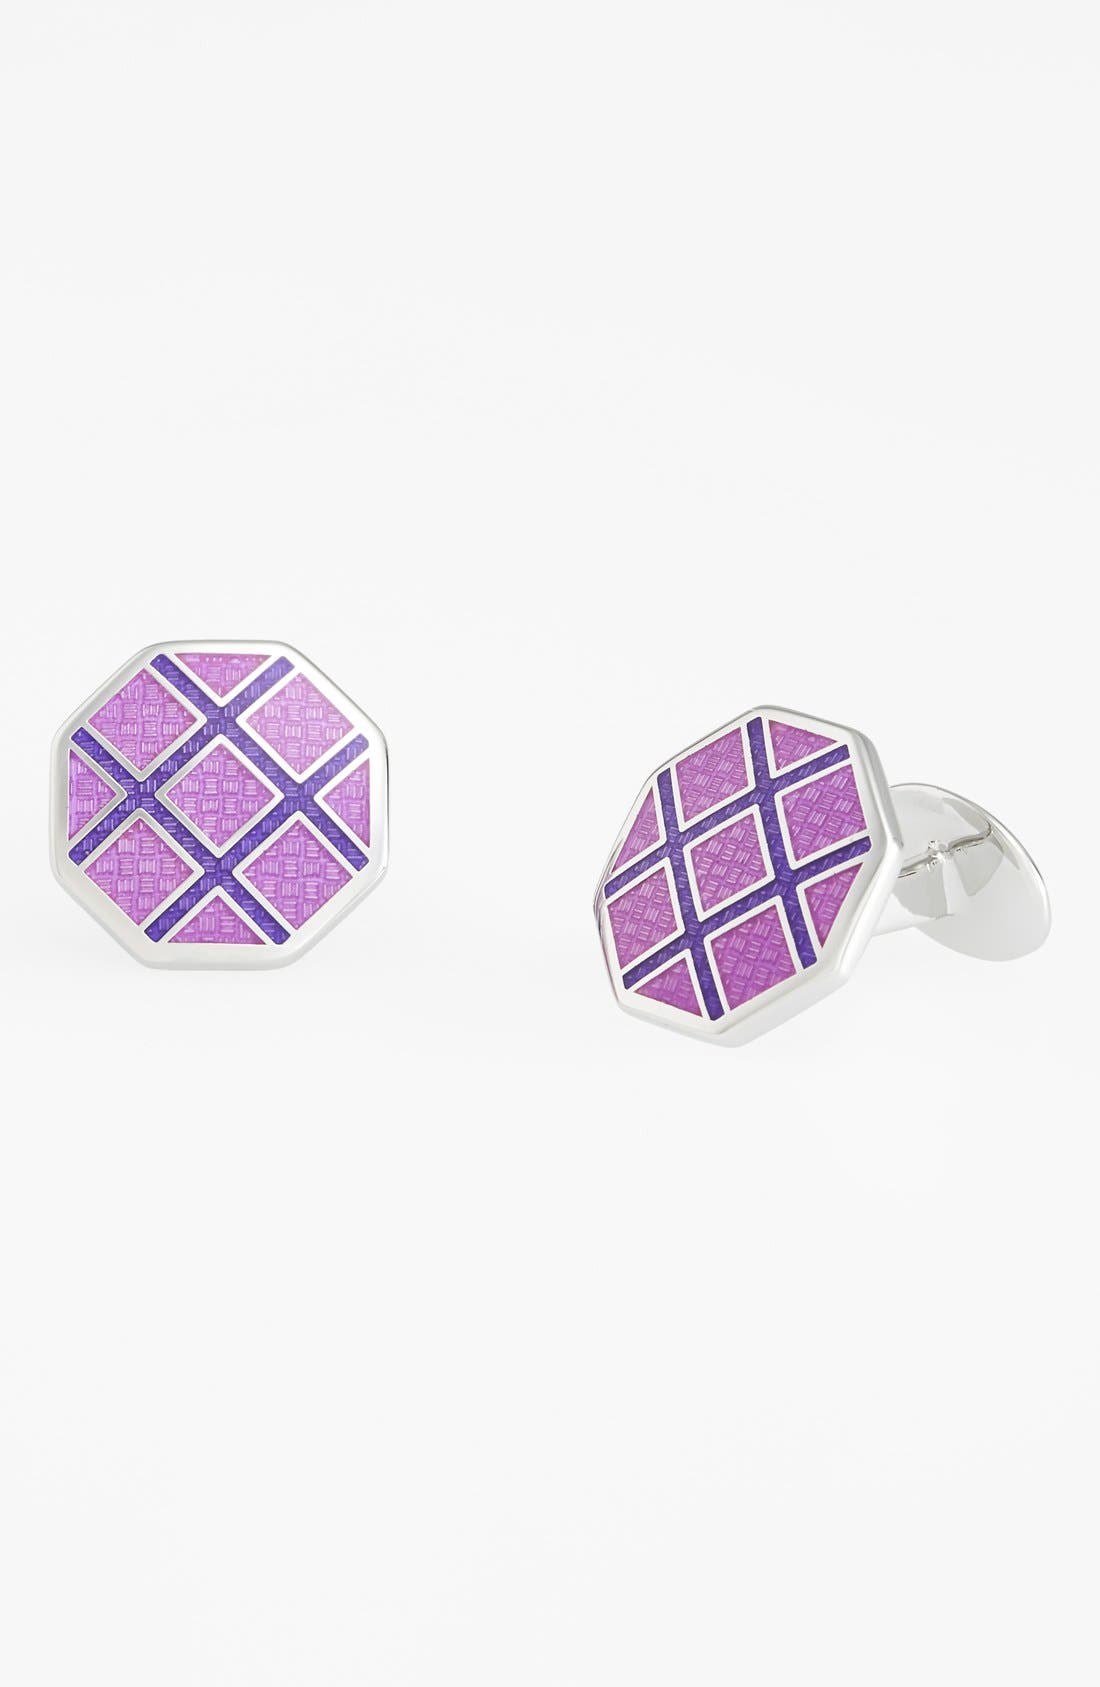 Octagon Cuff Links,                             Main thumbnail 1, color,                             Silver/ Light Purple/ Violet